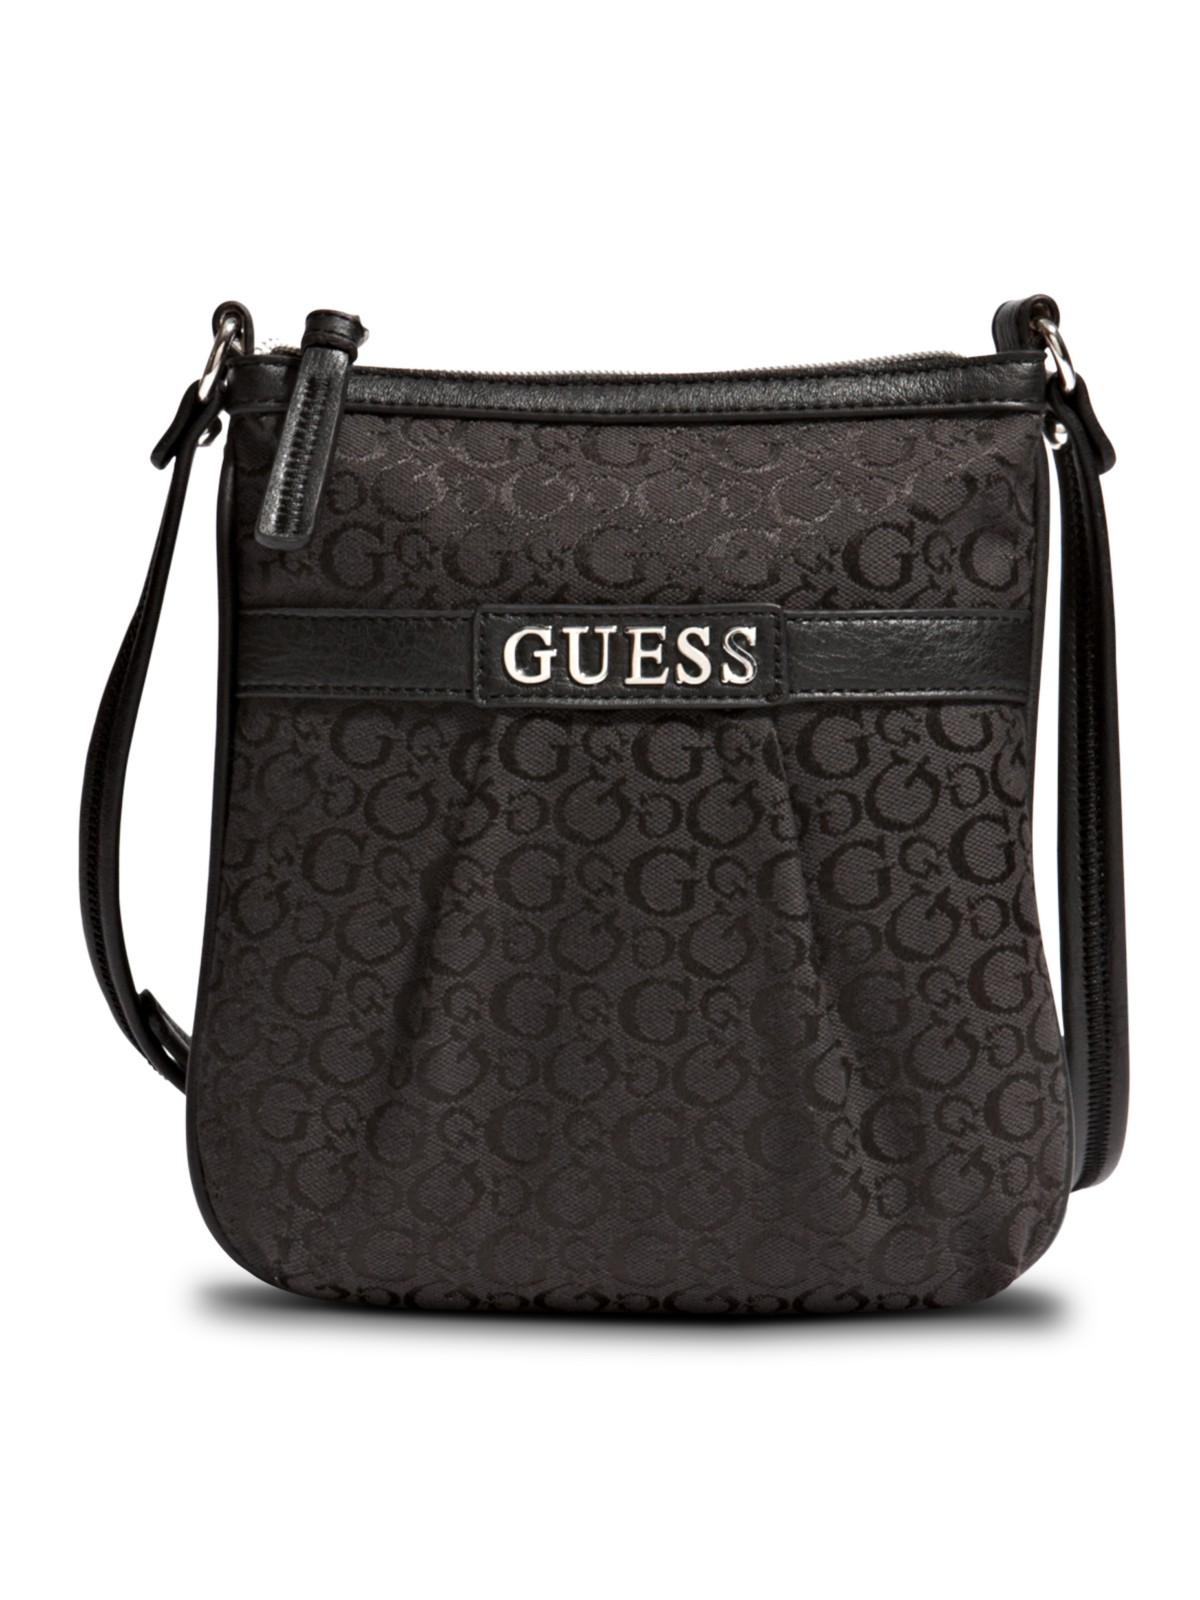 6f7a7e92b74bb GUESS Barletta Logo Cross-Body Bag